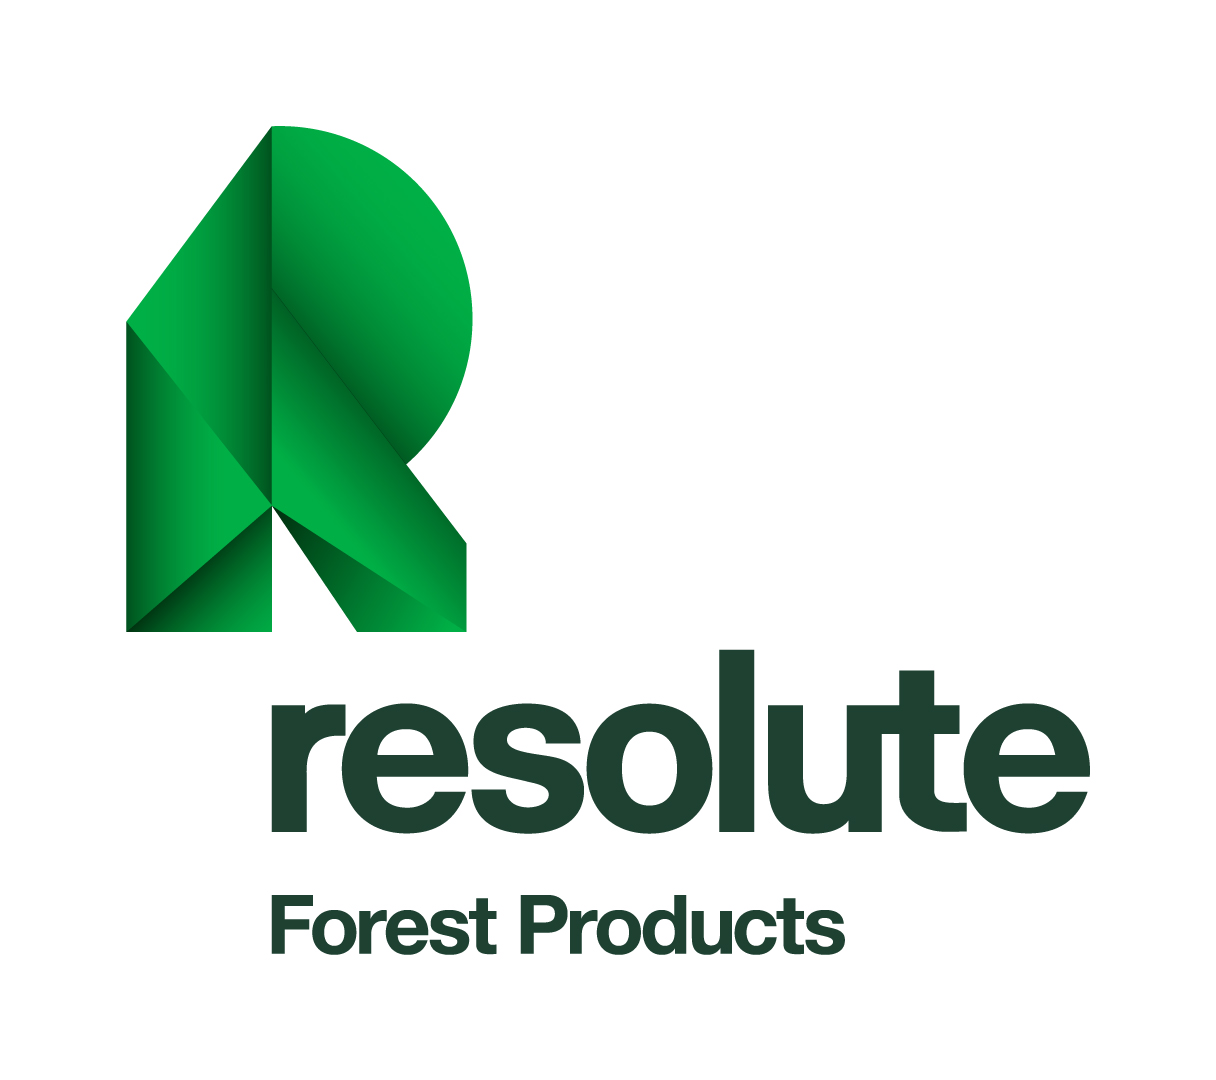 Resolute-Forest-Products.jpg